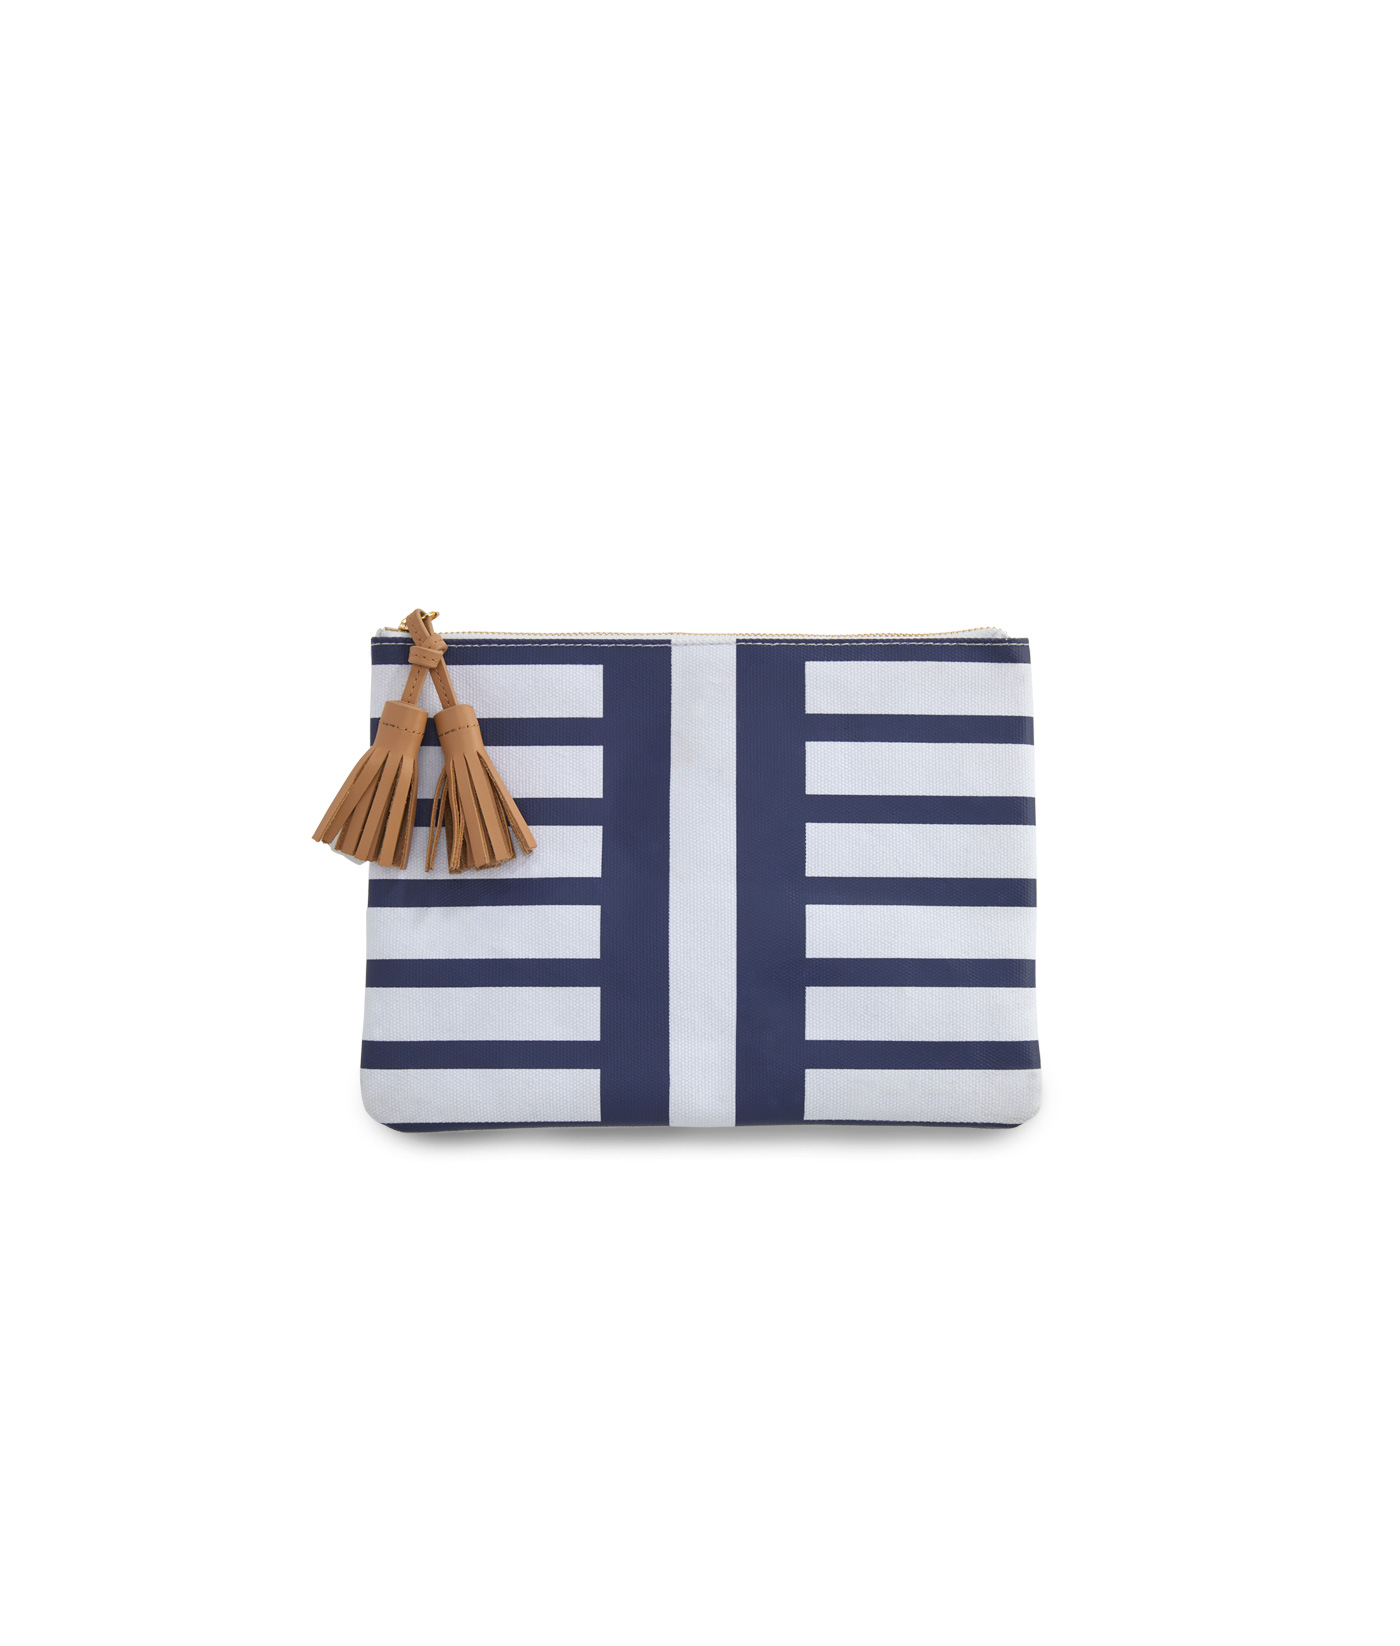 Seaside Stripe Clutch